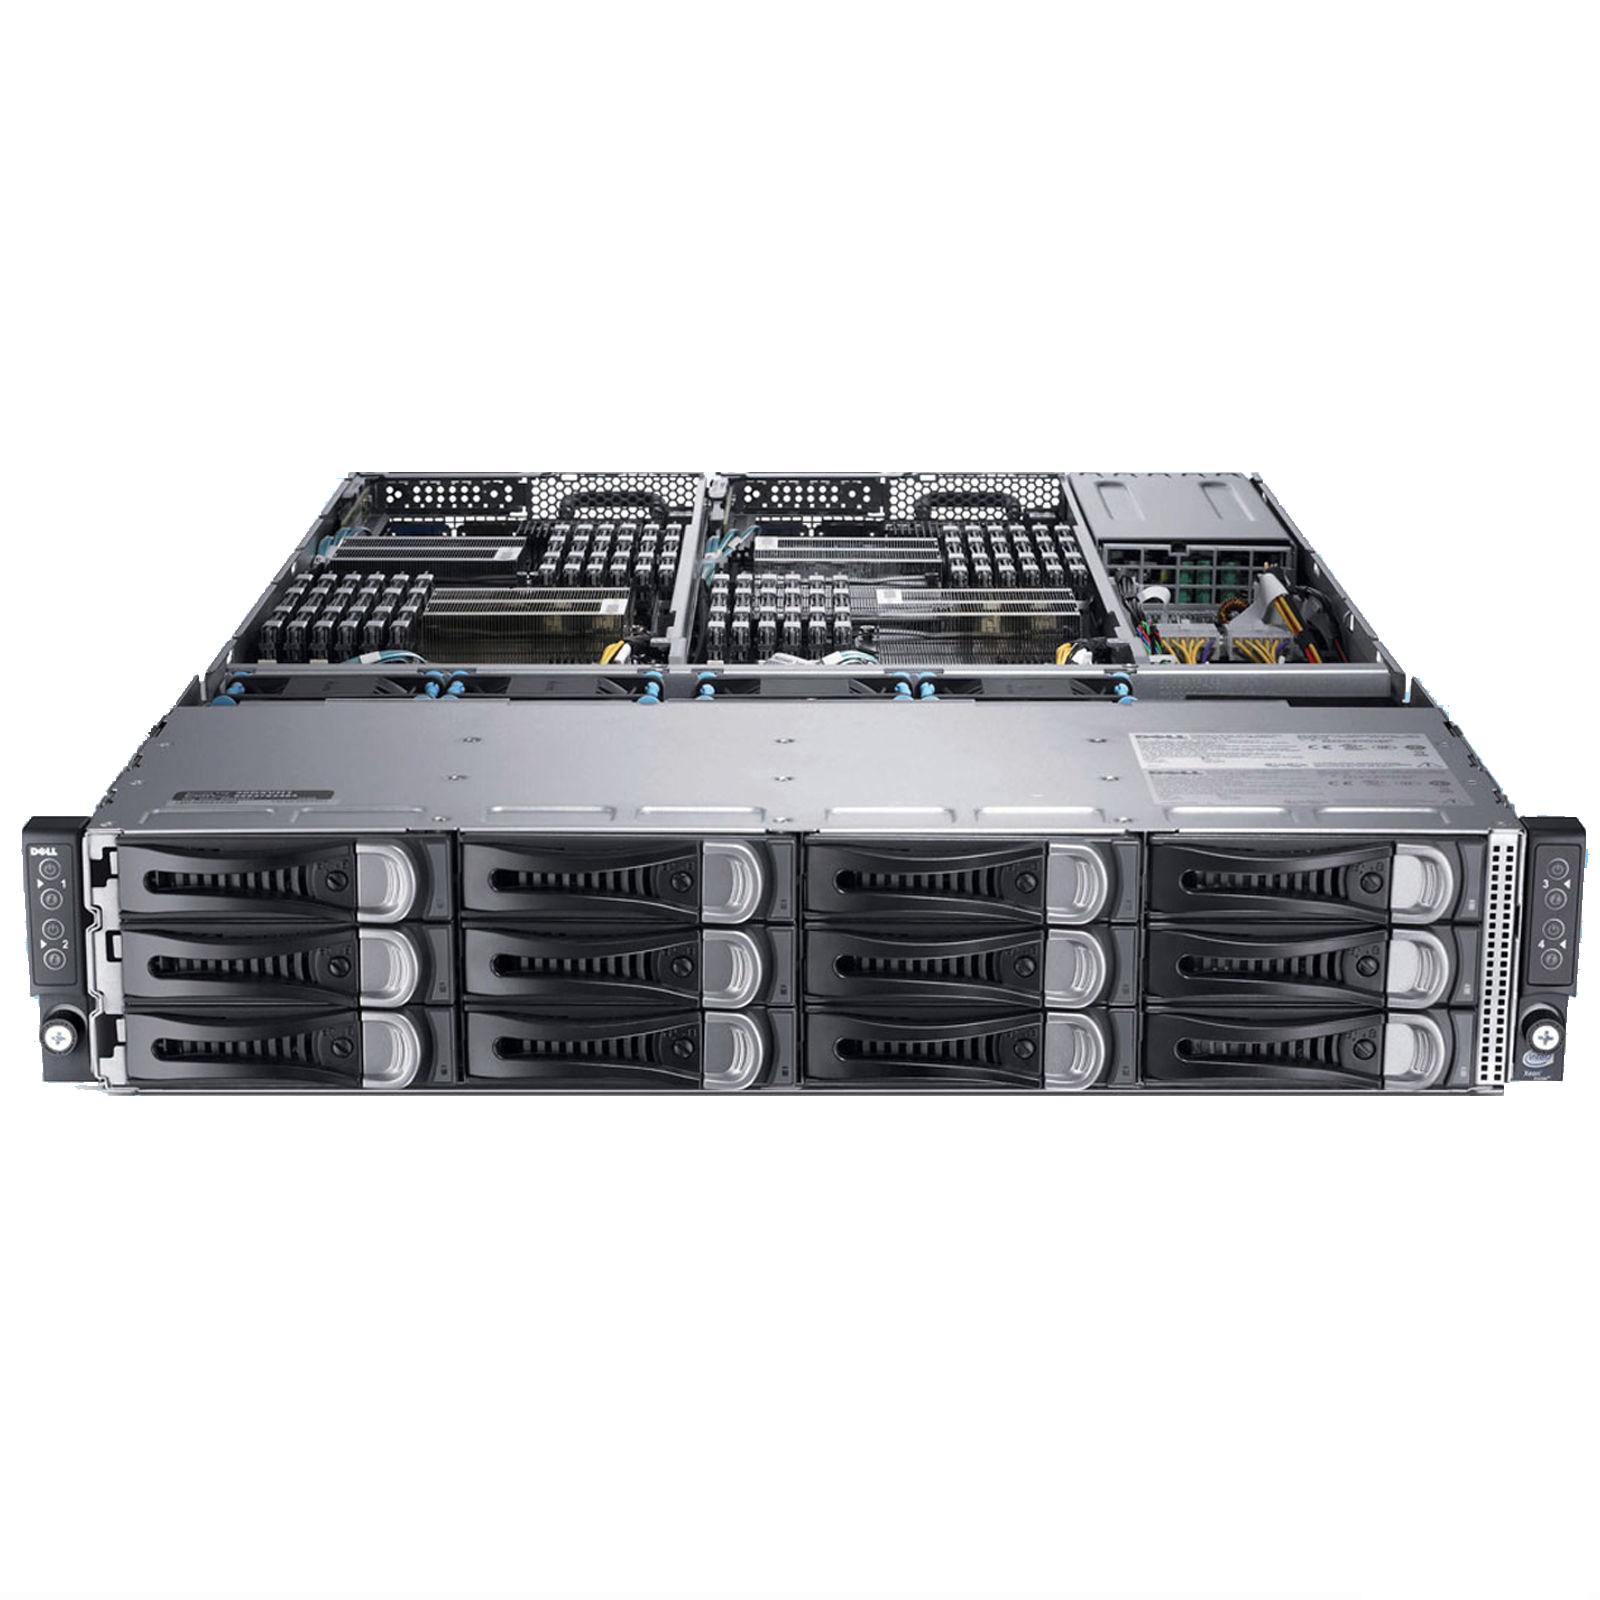 MÁY CHỦ DELL POWEREDGE C6320 4 NODE BAREBONE LFF